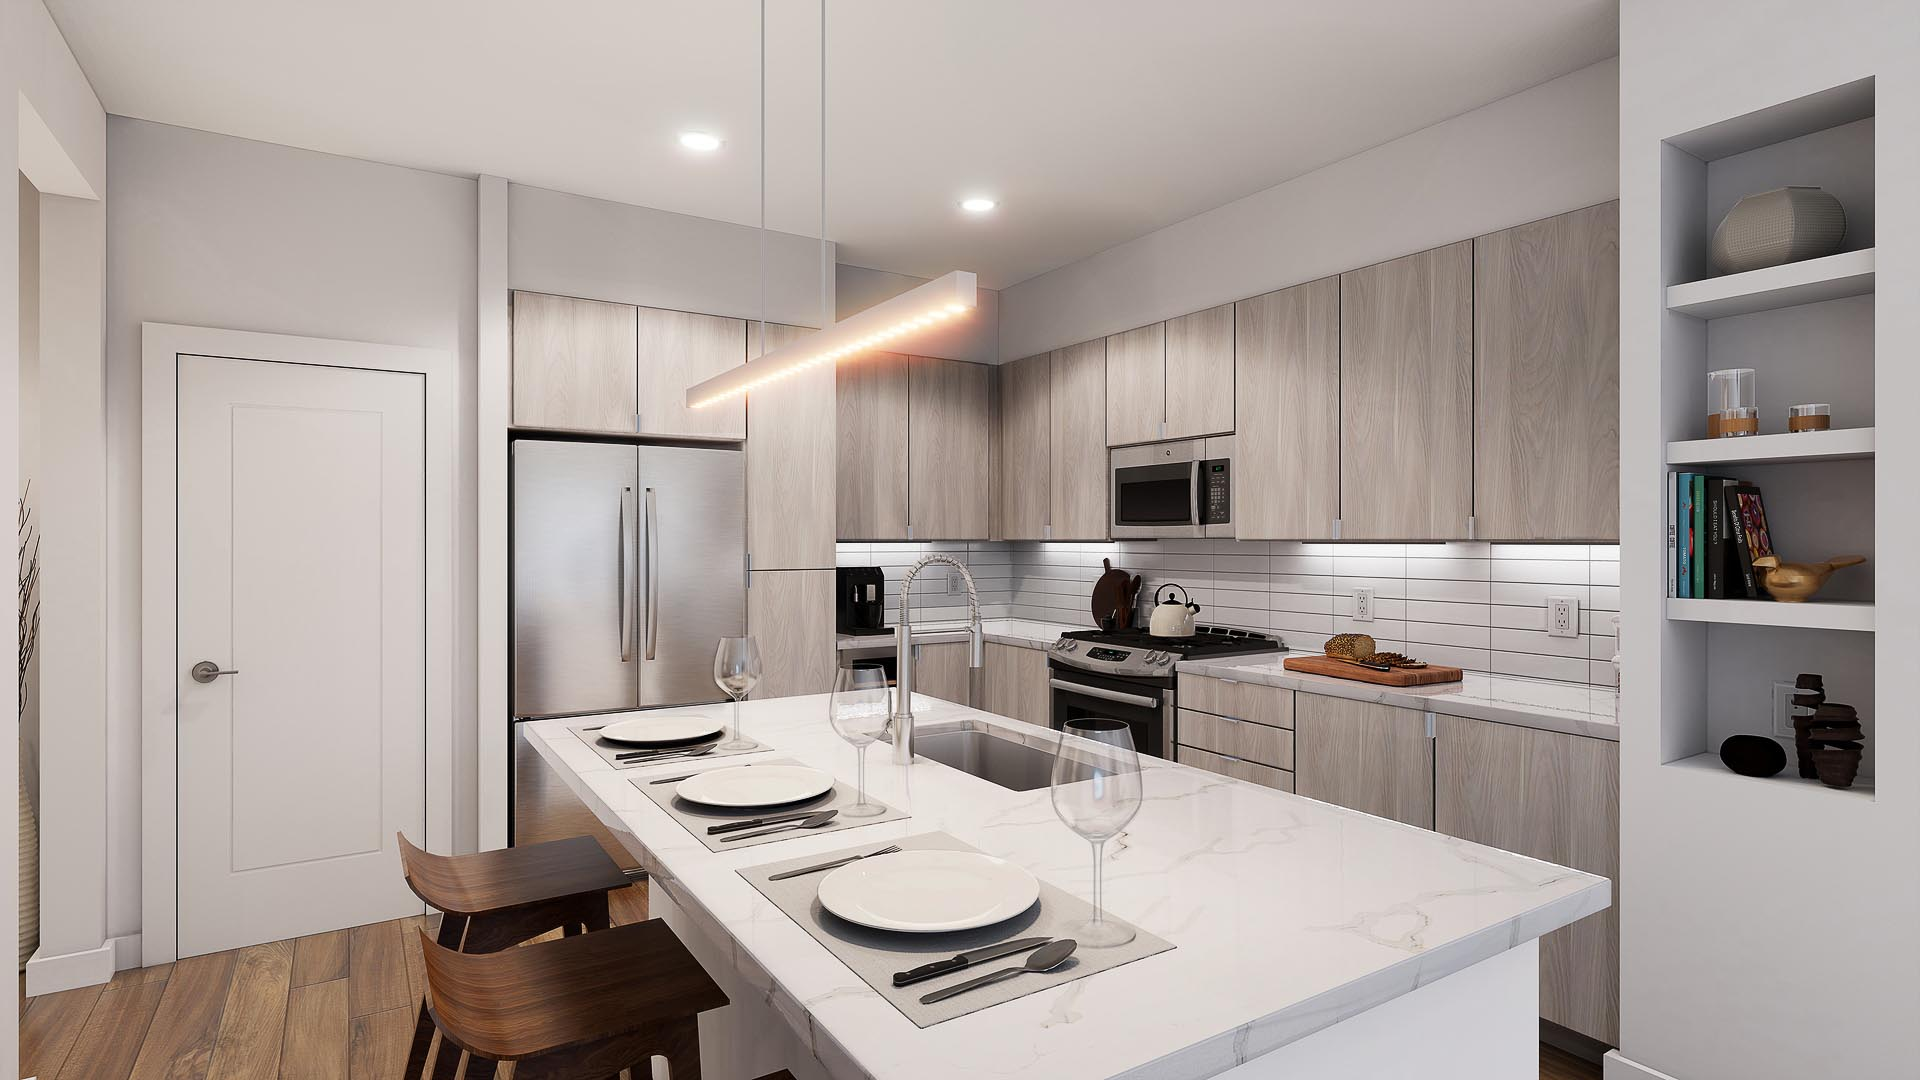 A 3D rendering of a beautiful apartment kitchen